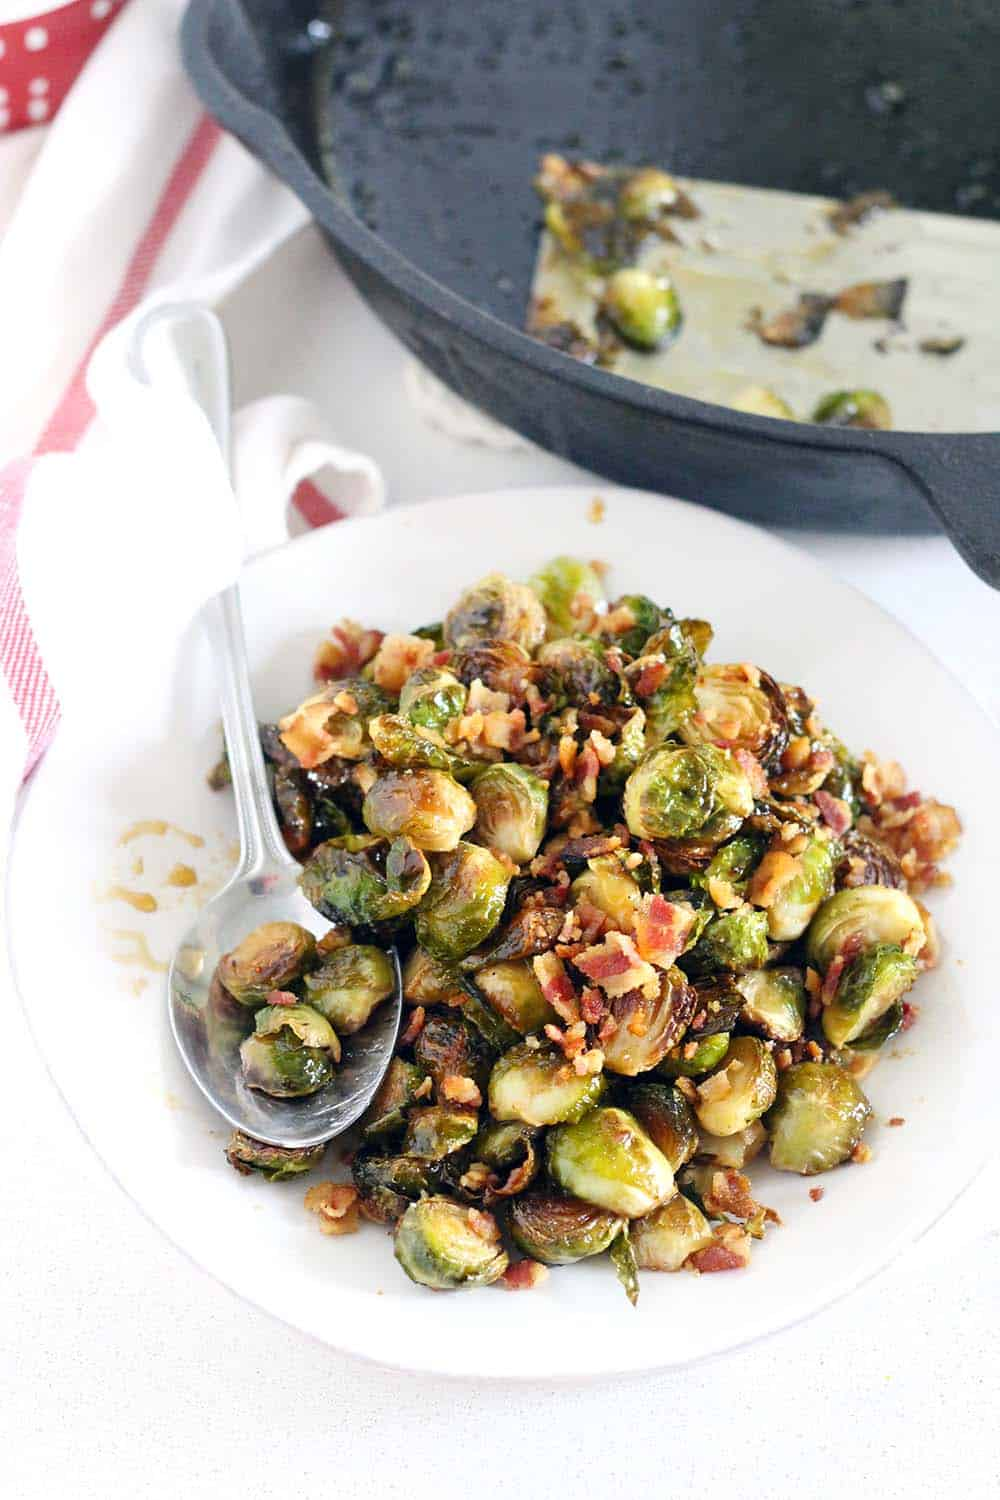 Maple Roasted Brussels Sprouts and Bacon- this recipe for Brussels sprouts is my favorite!! It's paleo, crispy roasted, slightly smoky from the bacon, and slightly sweet from the pure maple syrup. | www.bowlofdelicious.com